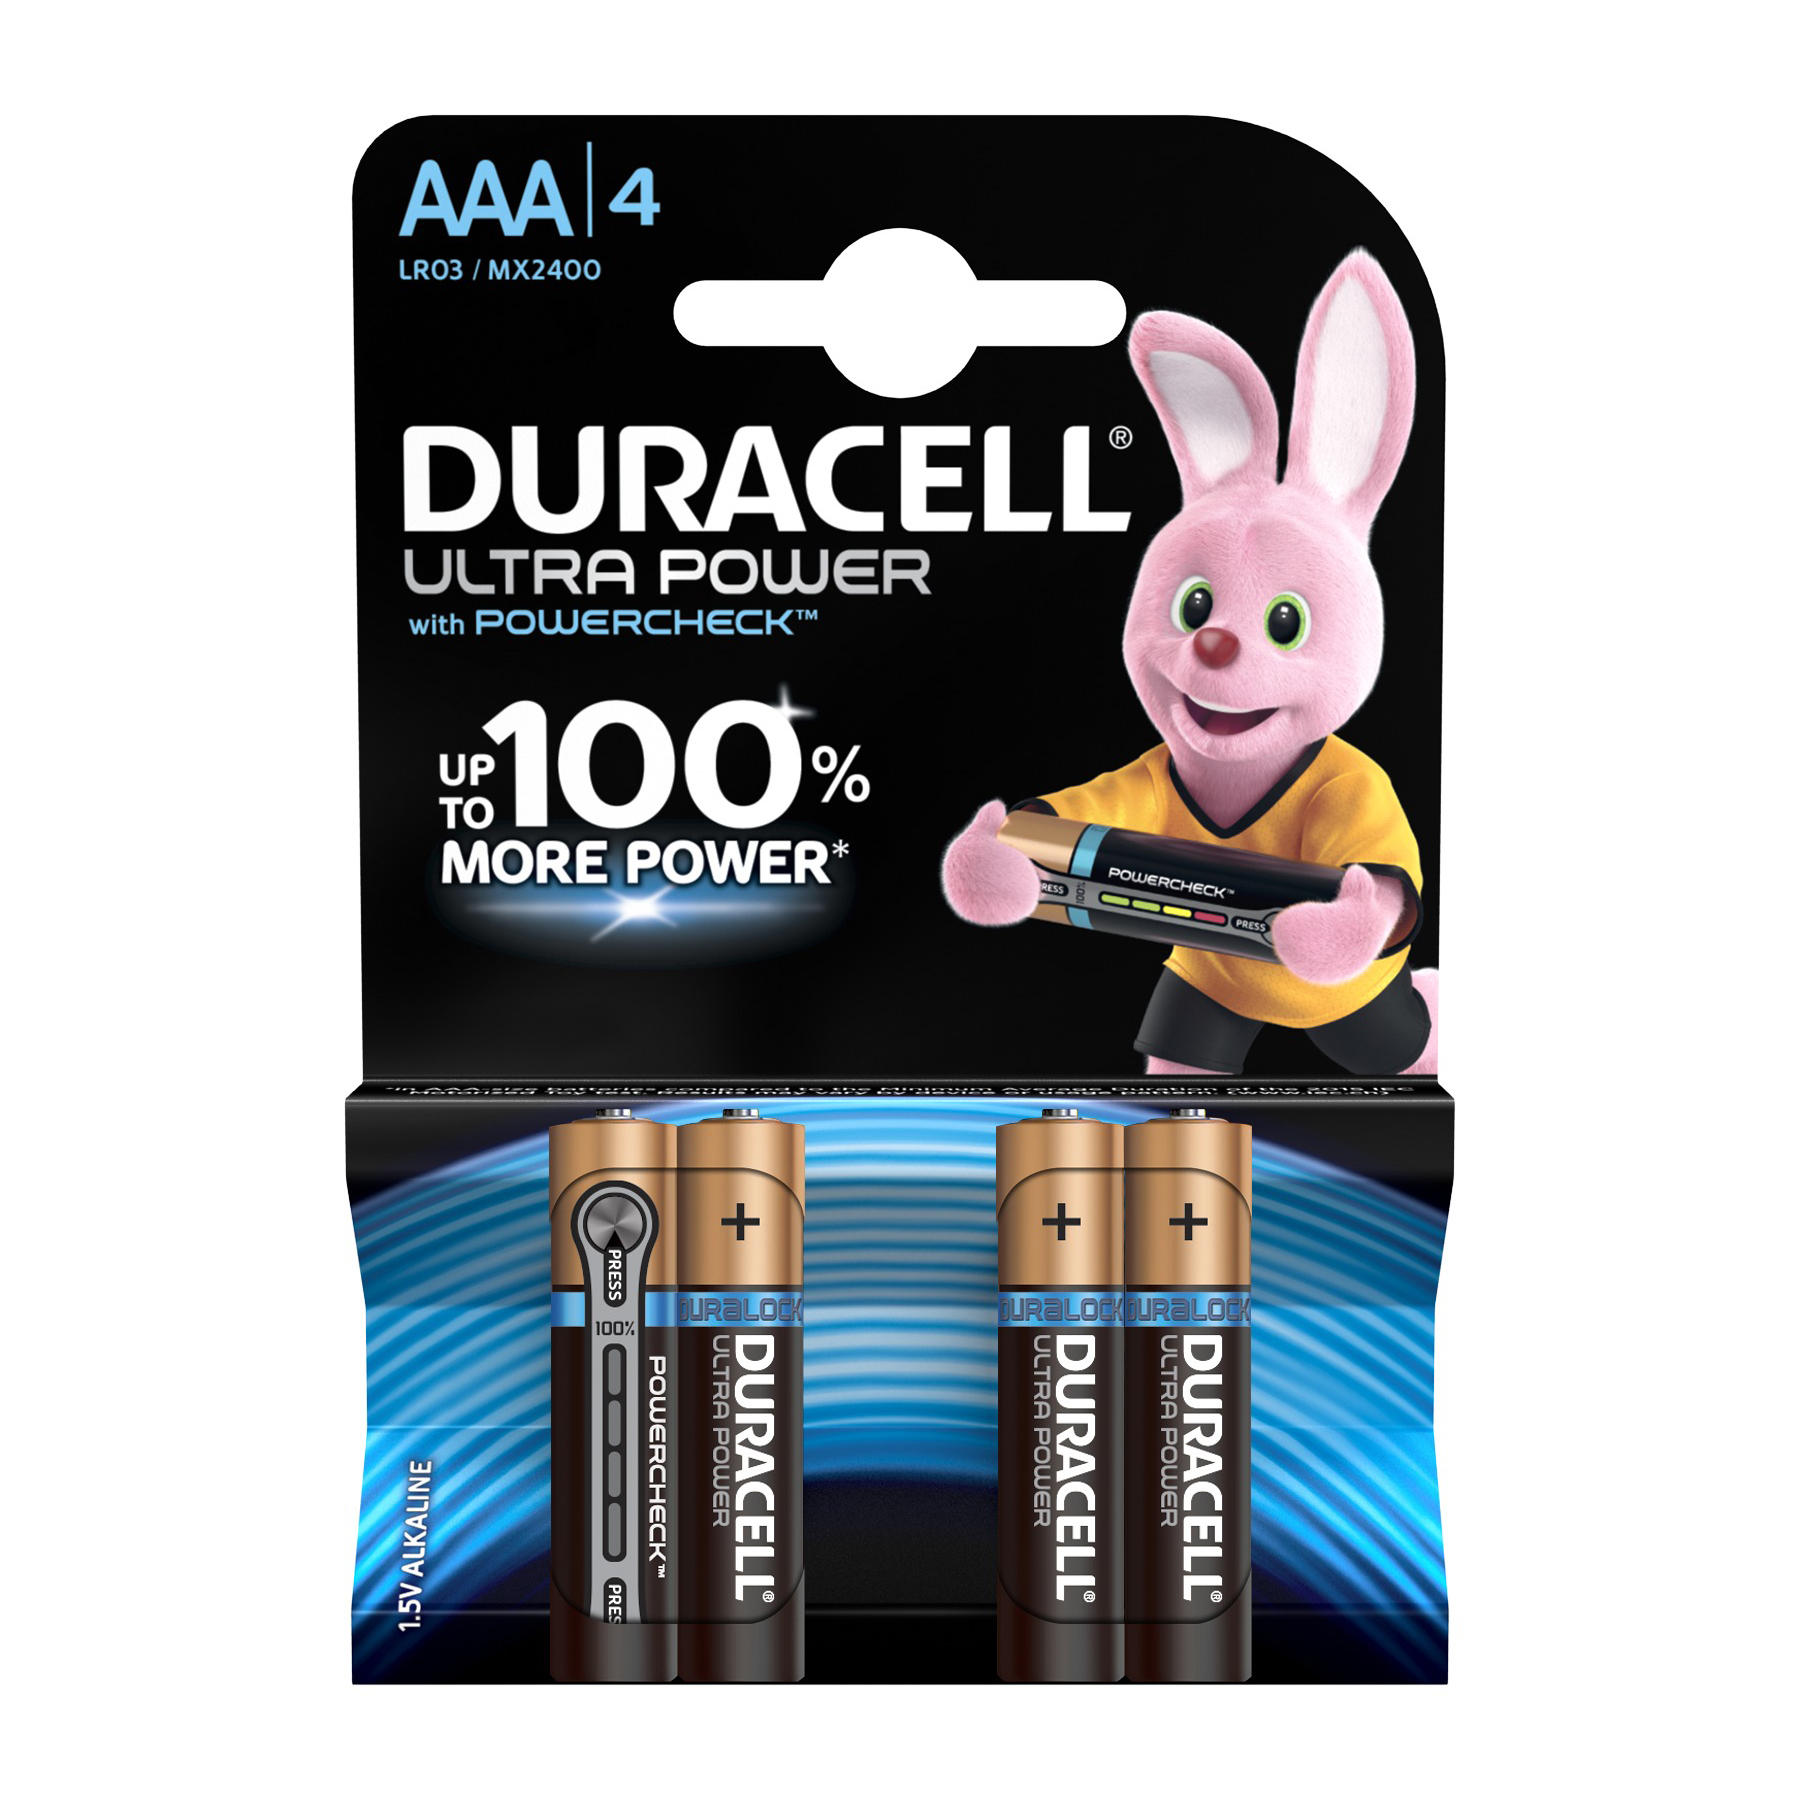 AAA Duracell Ultra Power MX2400 Battery Alkaline 1.5V AAA Ref 81417787 Pack 4